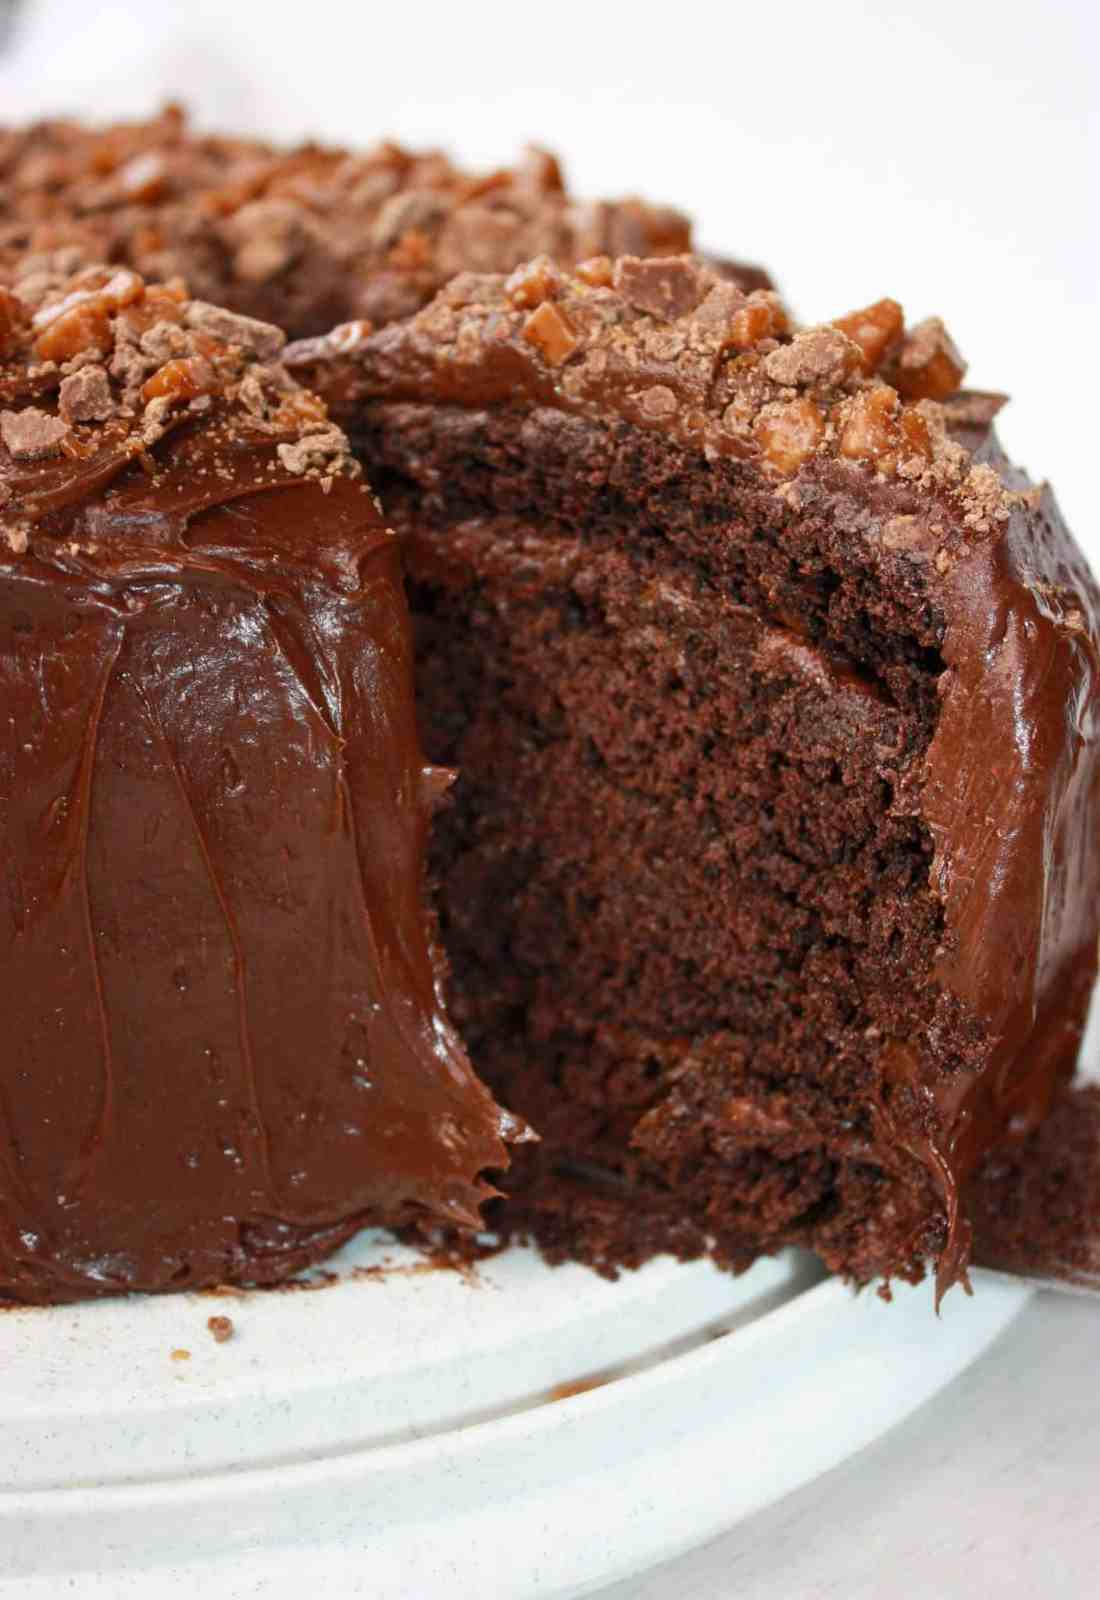 Gluten Free Chocolate Layer Cake is a delicious dessert that is easy to make. This moist and light layer cake can easily be decorated to suit any occasion.